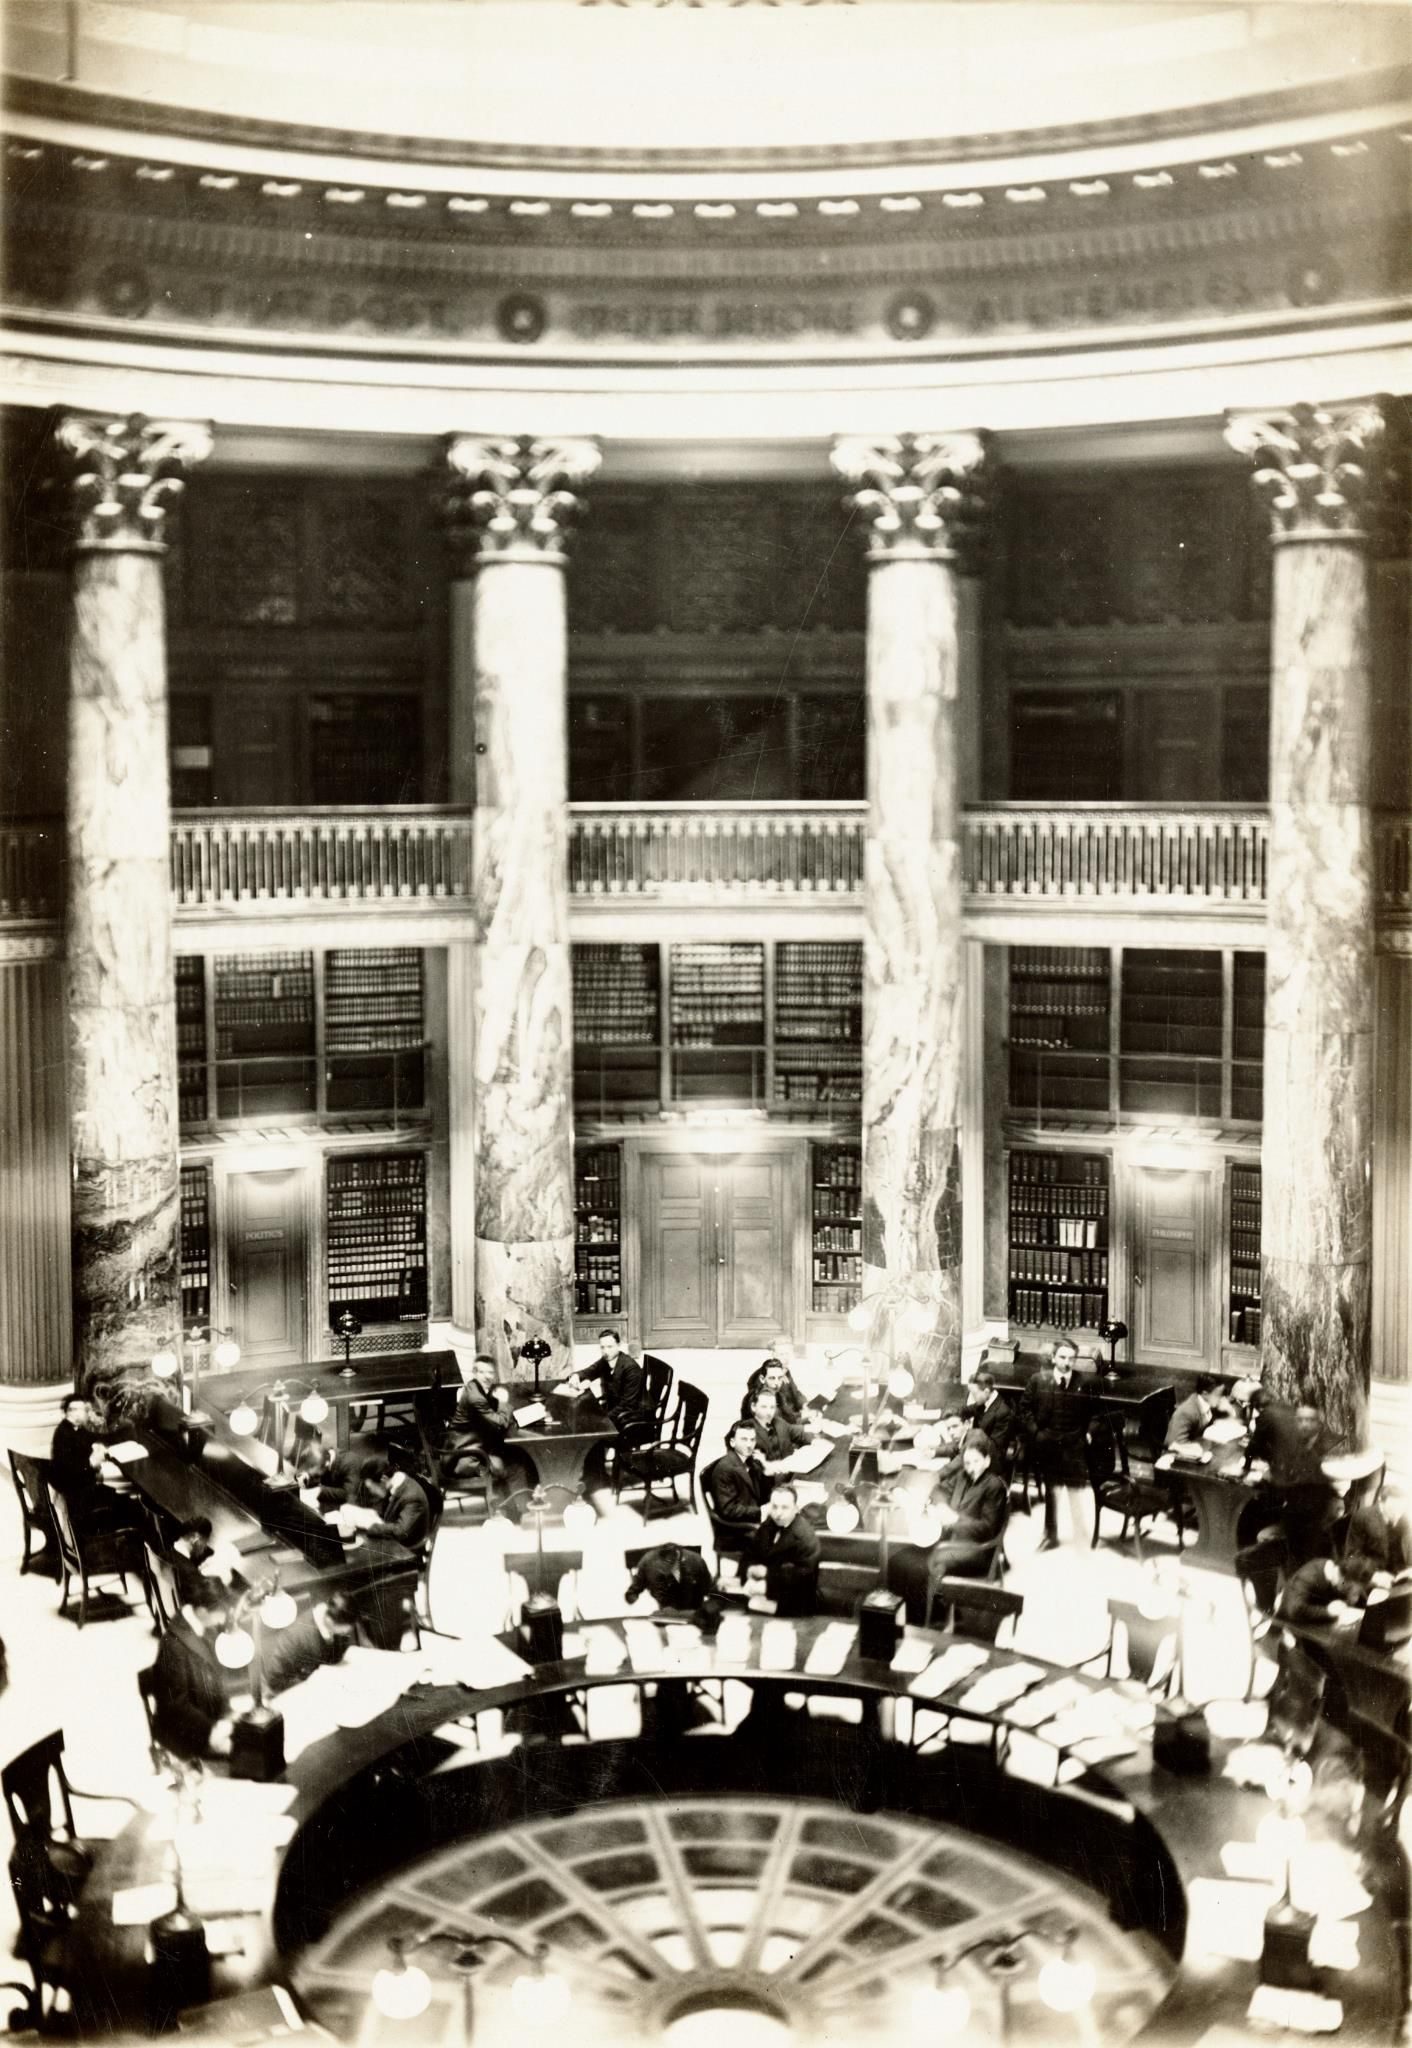 Before Bobst An interior shot of the central reading room in